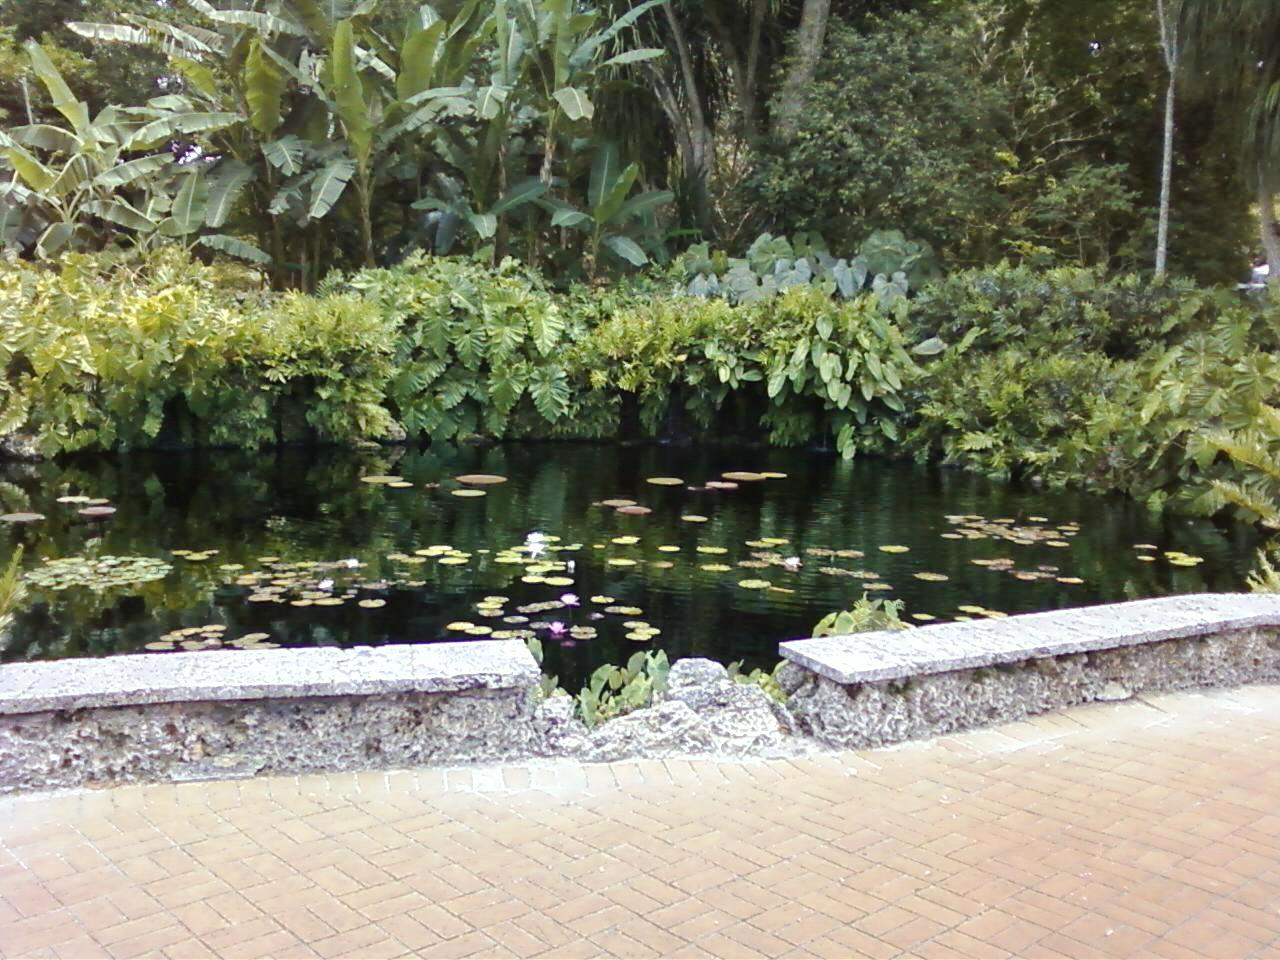 Lily pond at Fairchild Tropical Botanic Gardens.